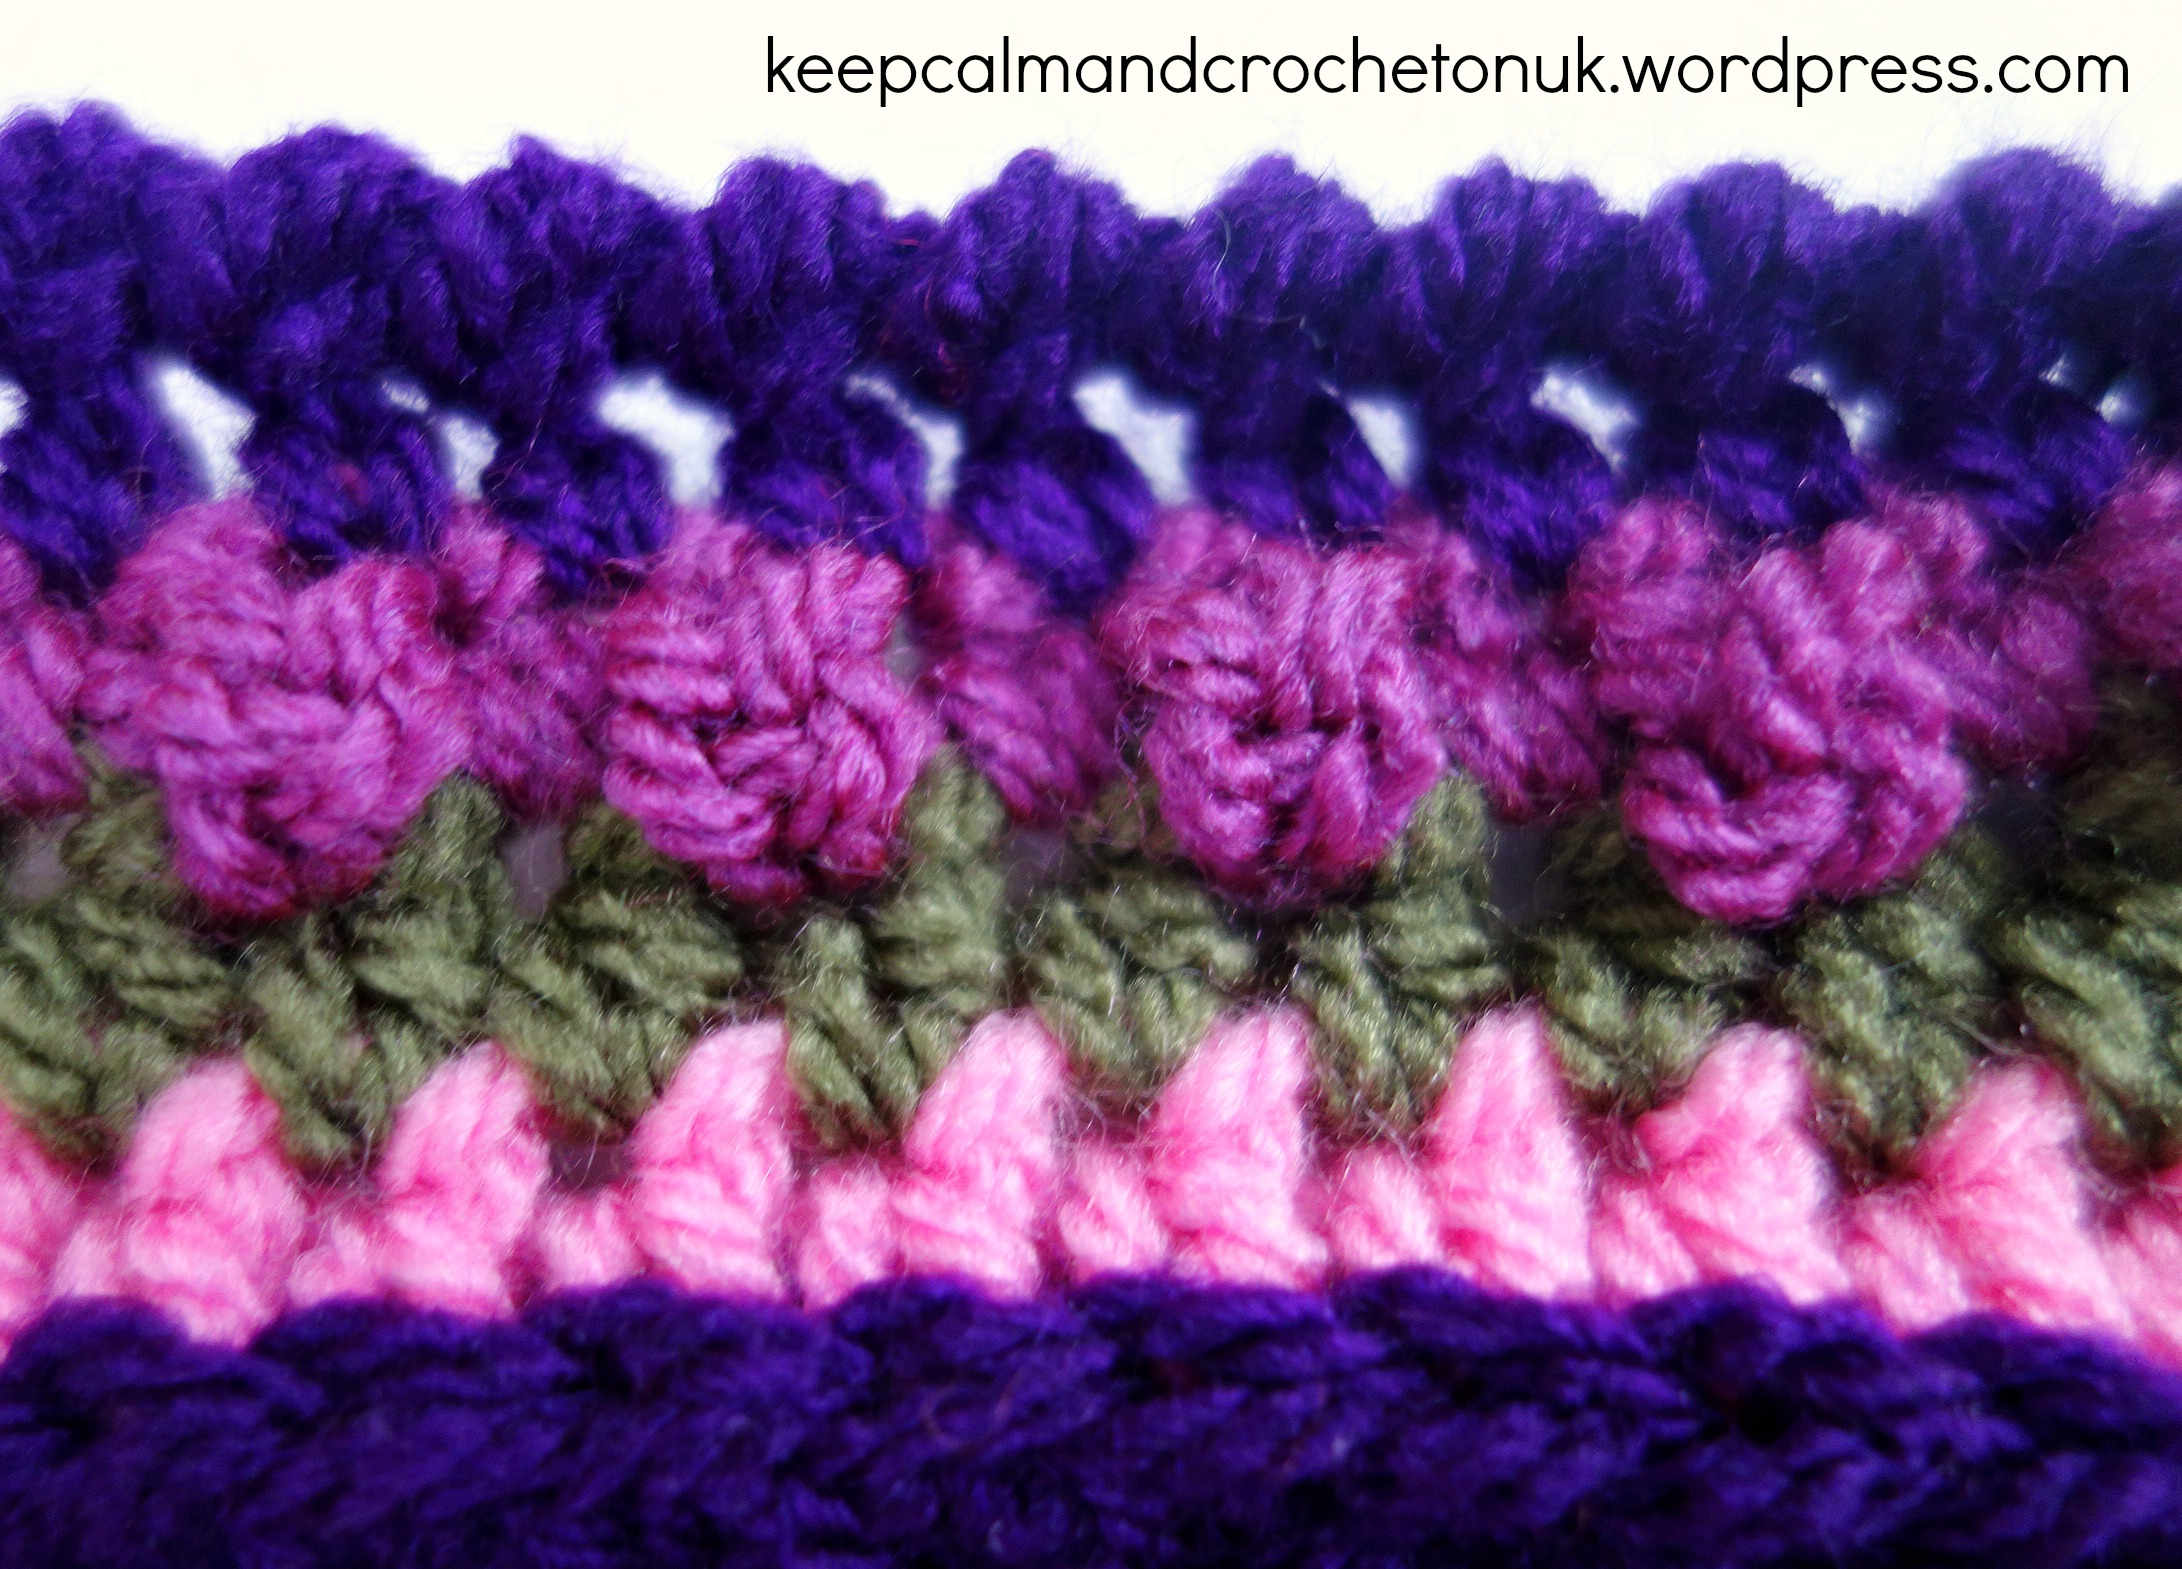 Crochet-A-long 2015 | Keep Calm and Crochet On U.K